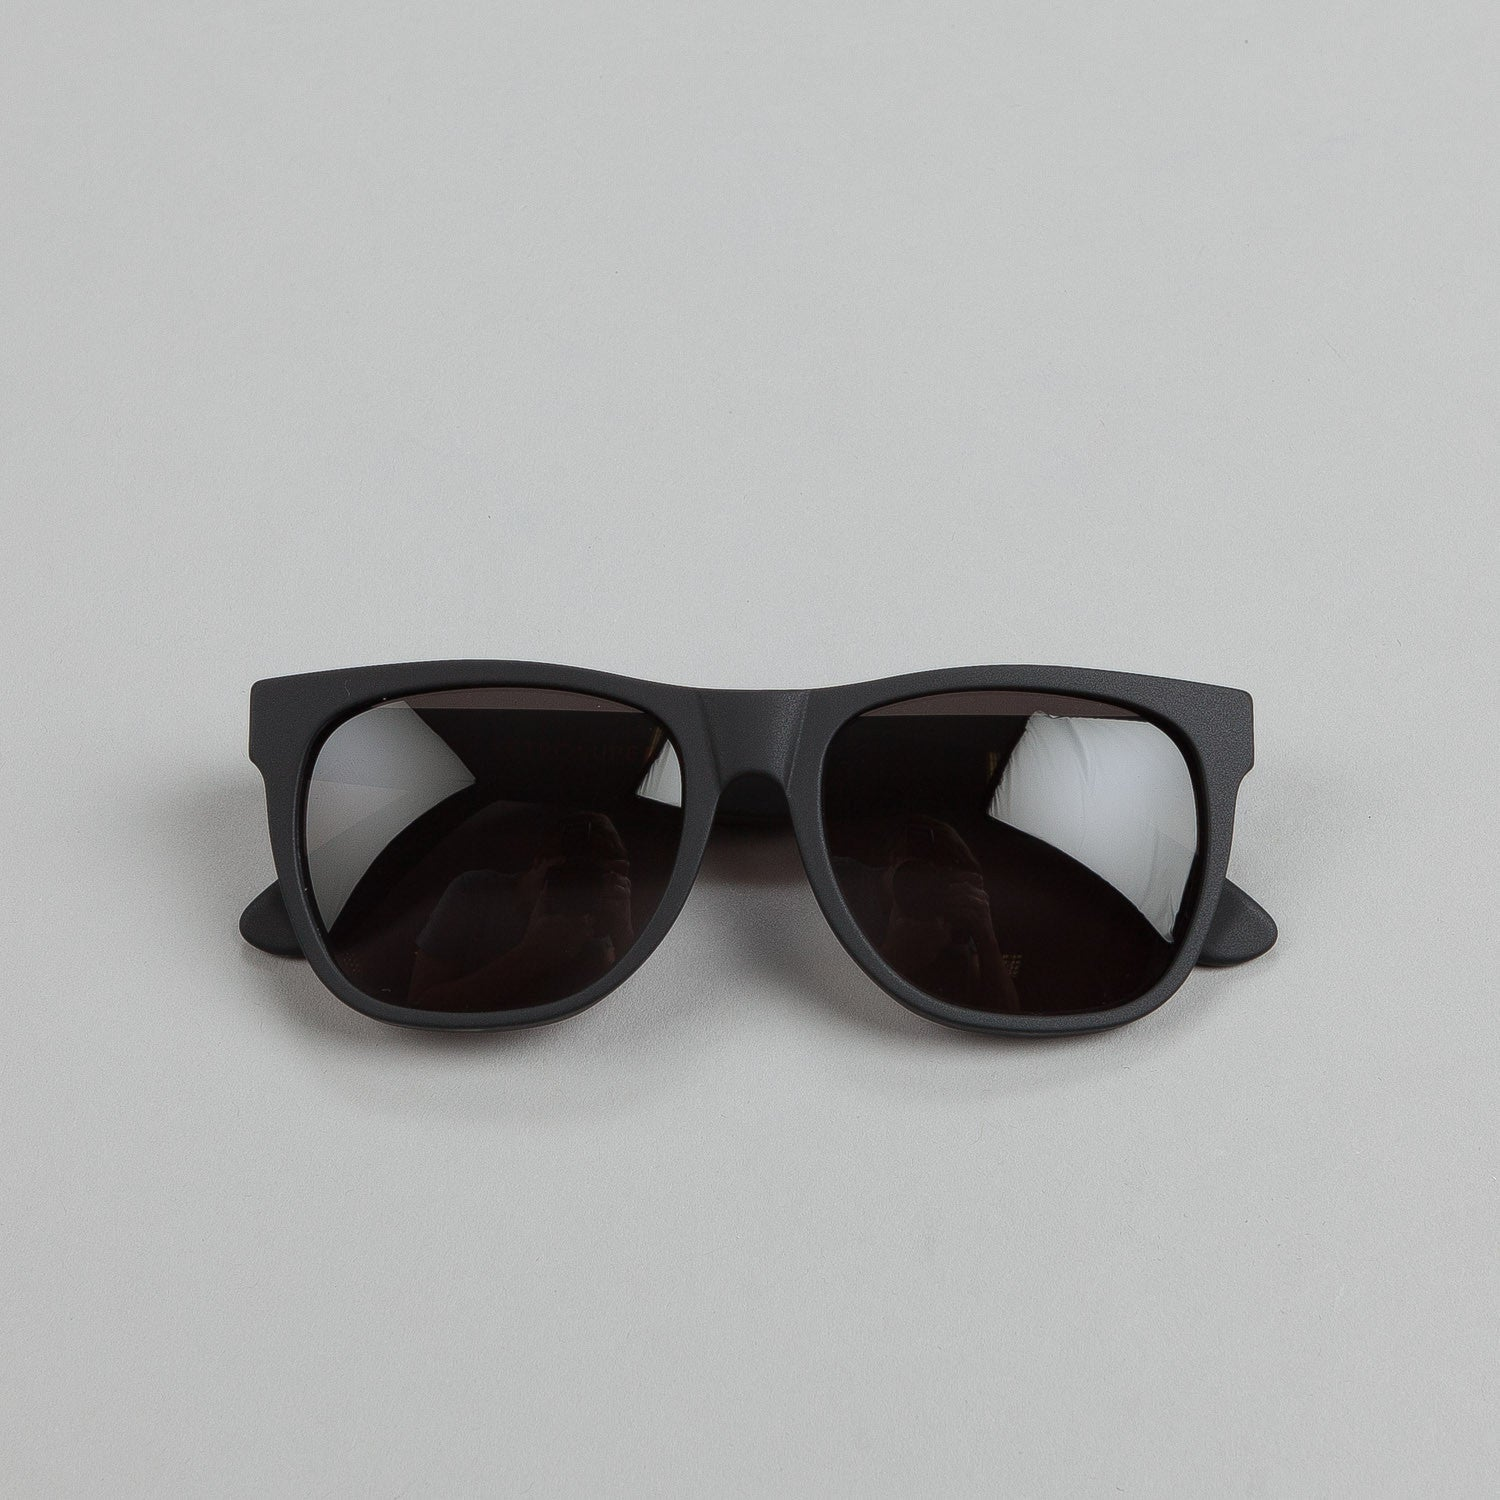 Super Sunglasses Classic Black Matte